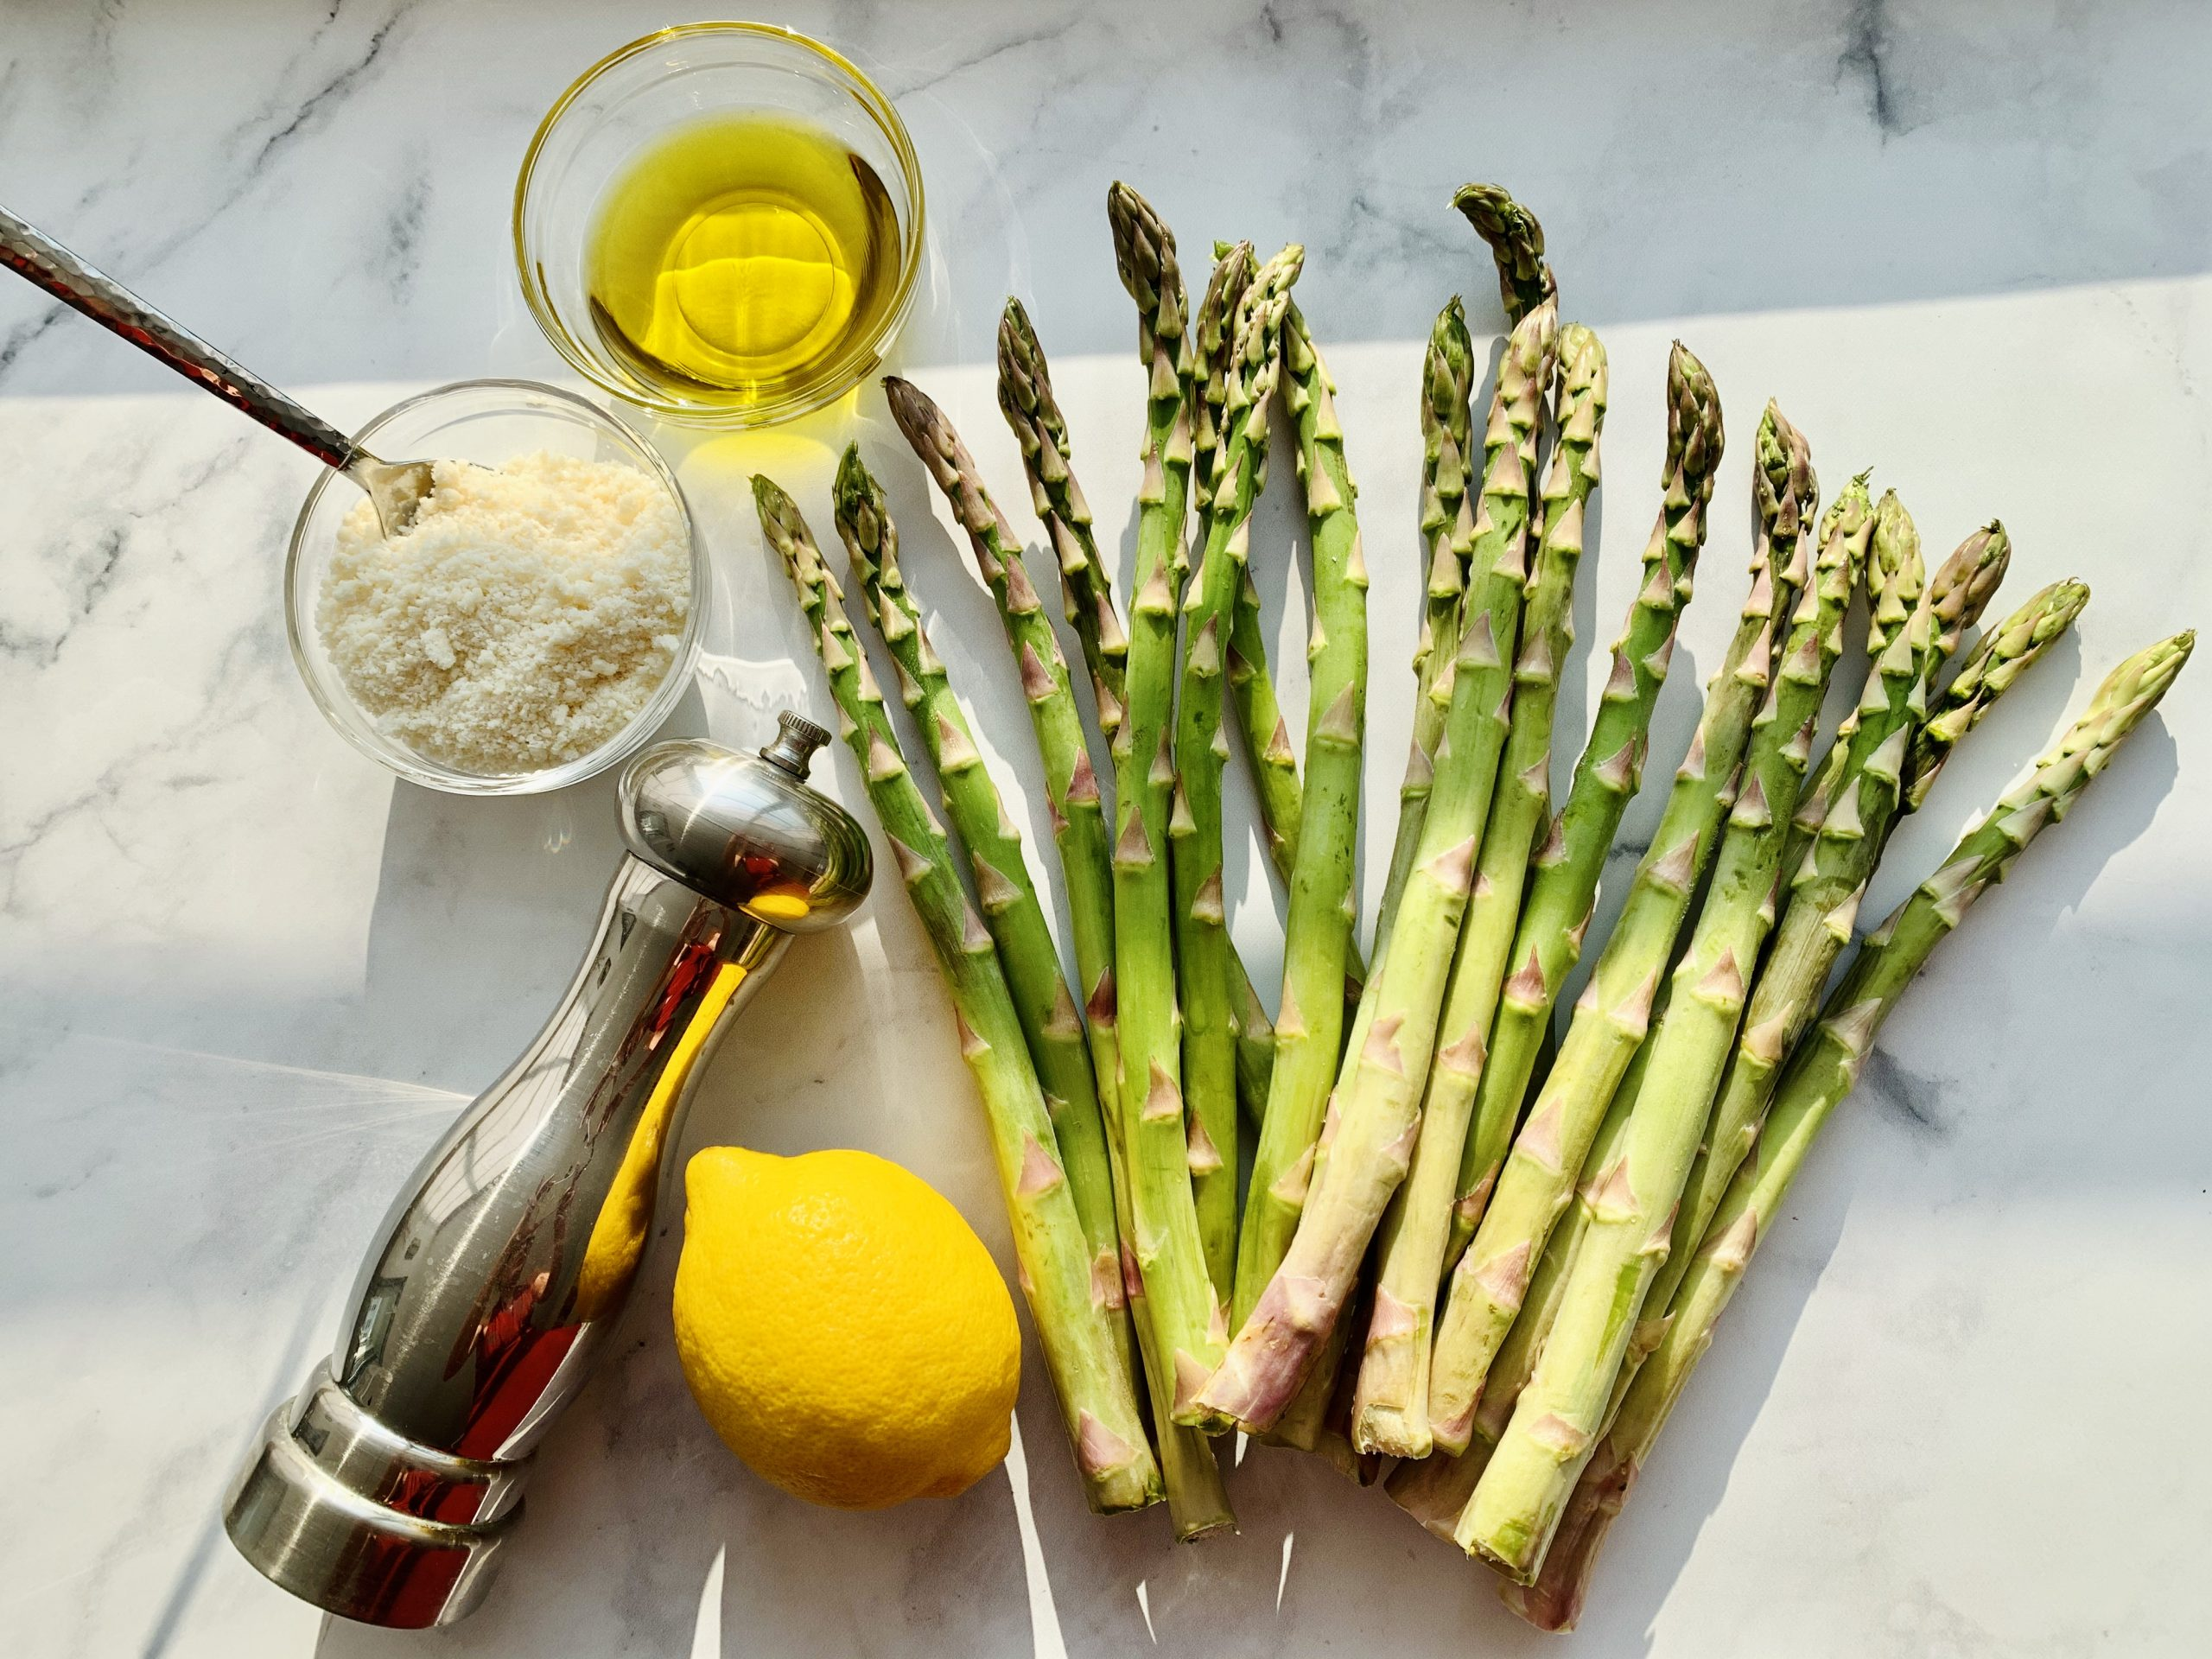 Ingredients for Asparagus with Lemon and parmesan